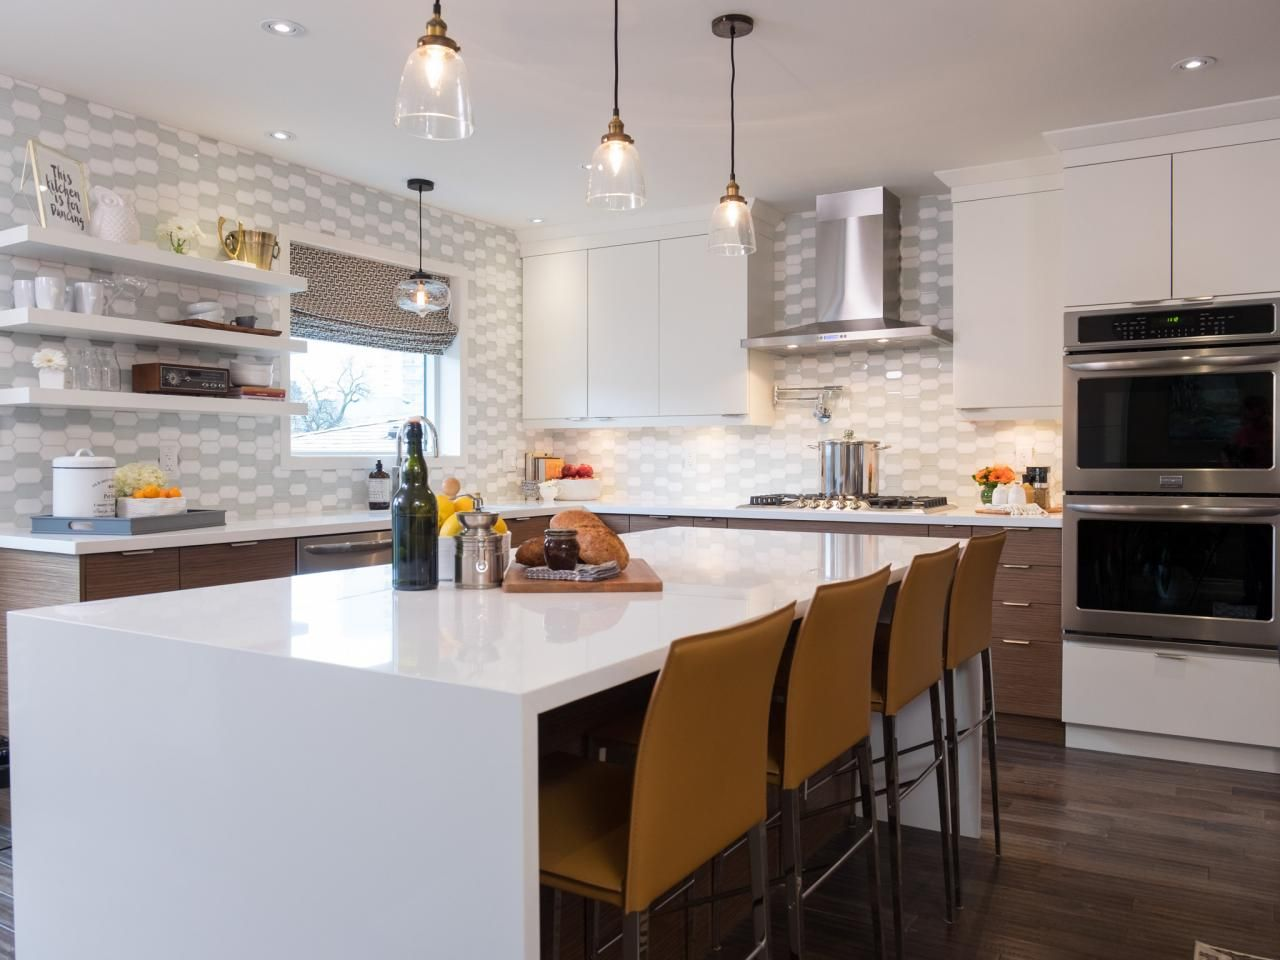 Find the best of Property Brothers from HGTV | Decoración ...